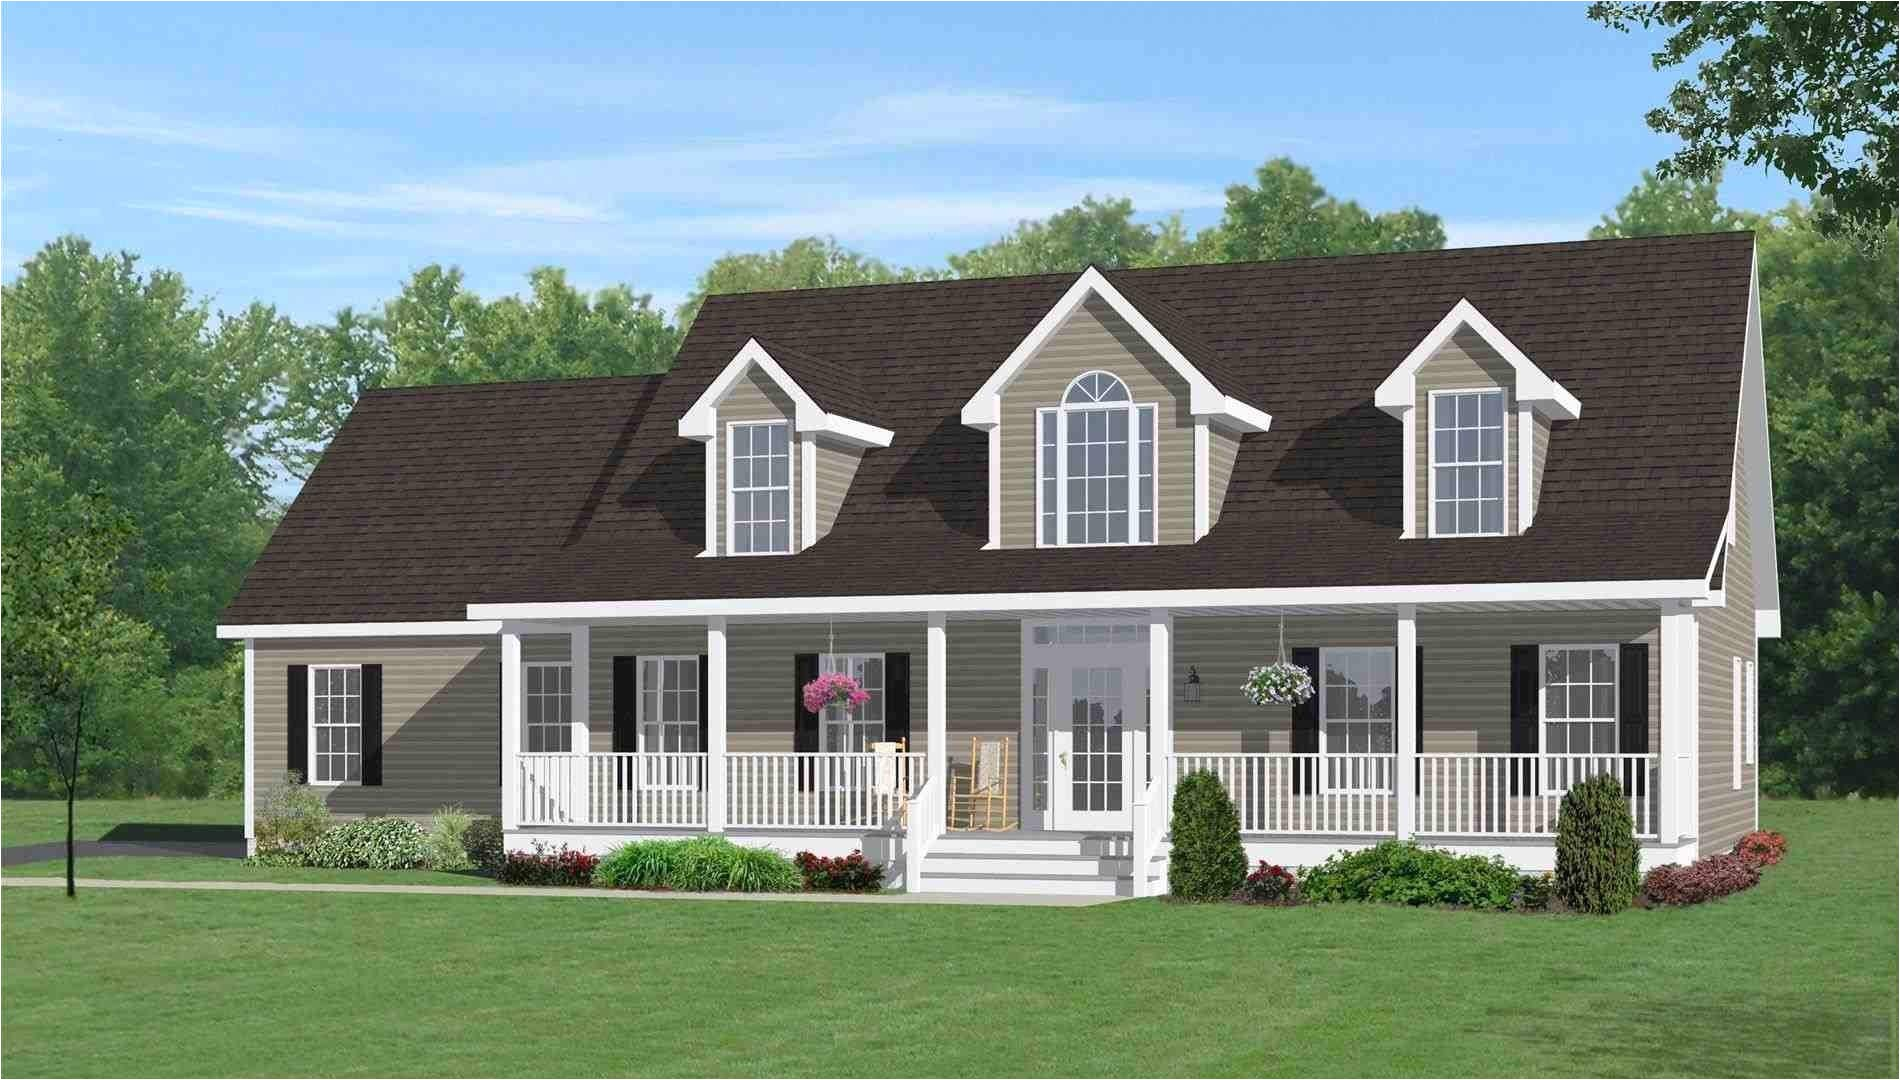 small house plans with loft and porch new house plans built around pool new small house plans with wrap around